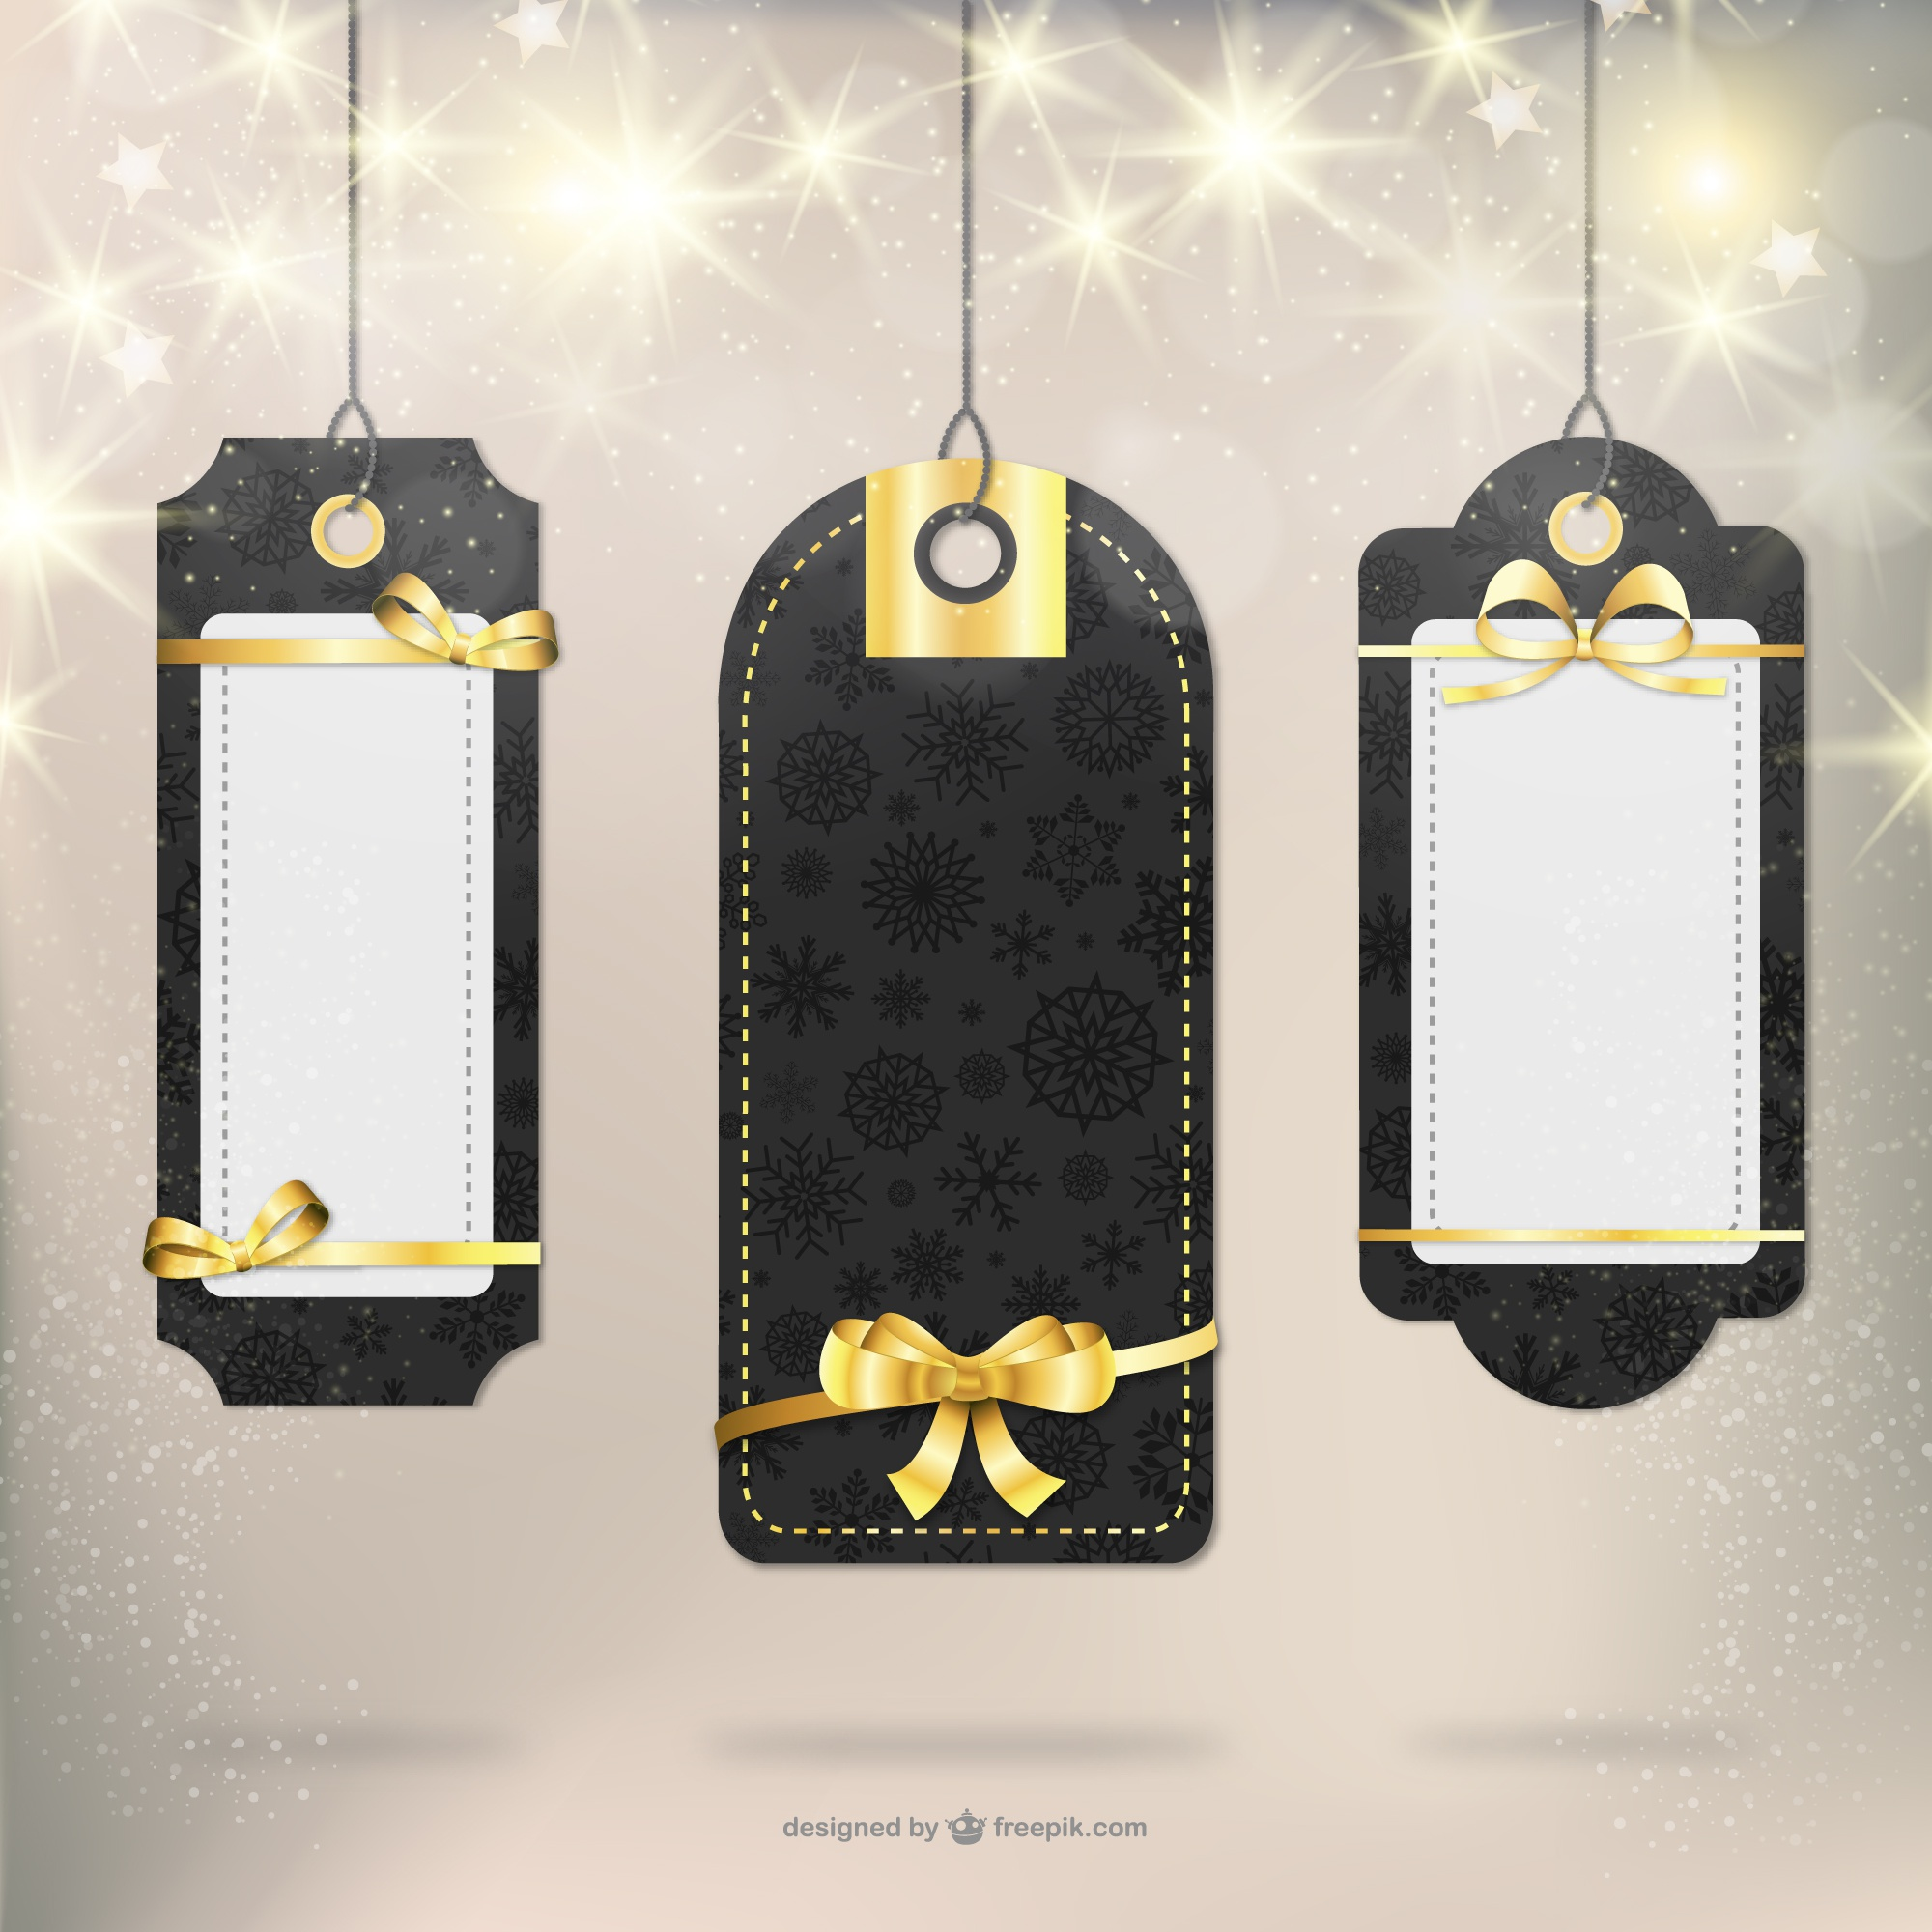 Elegant Christmas gift labels